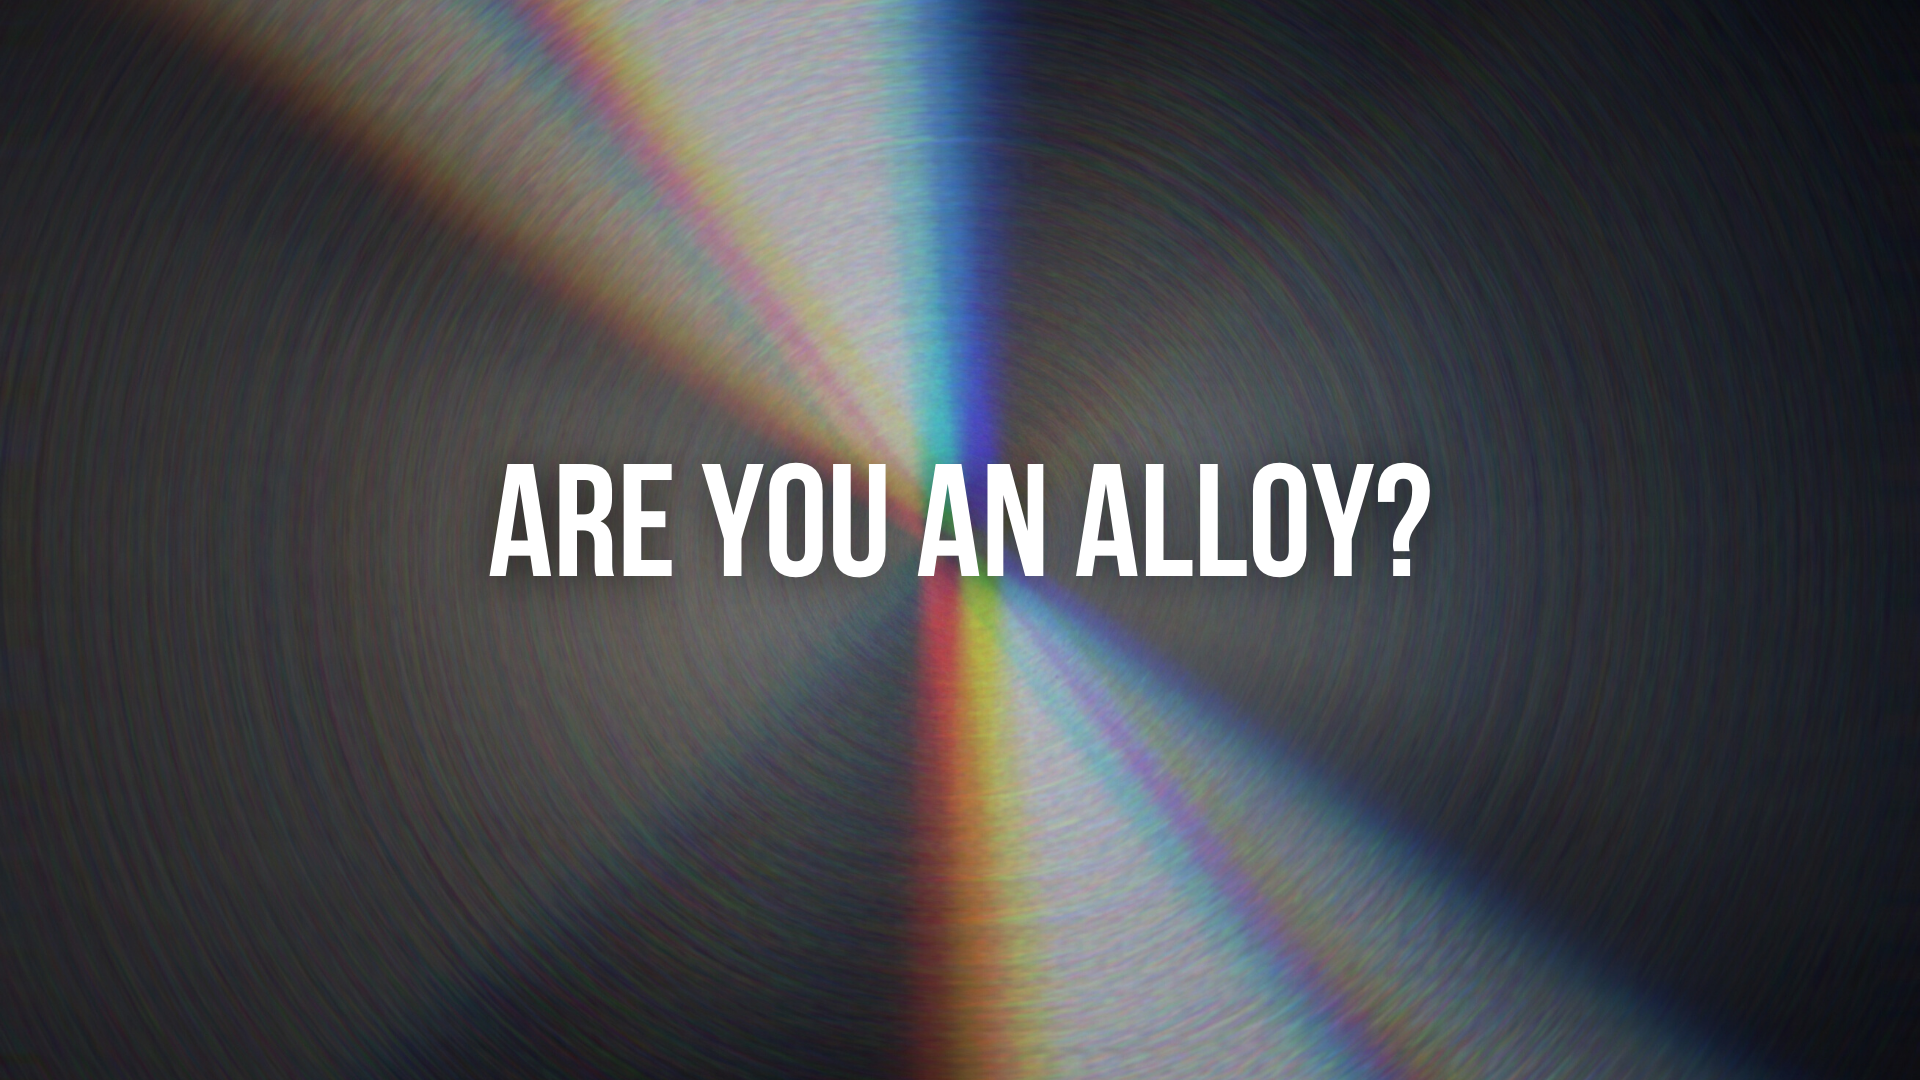 Are You An Alloy?